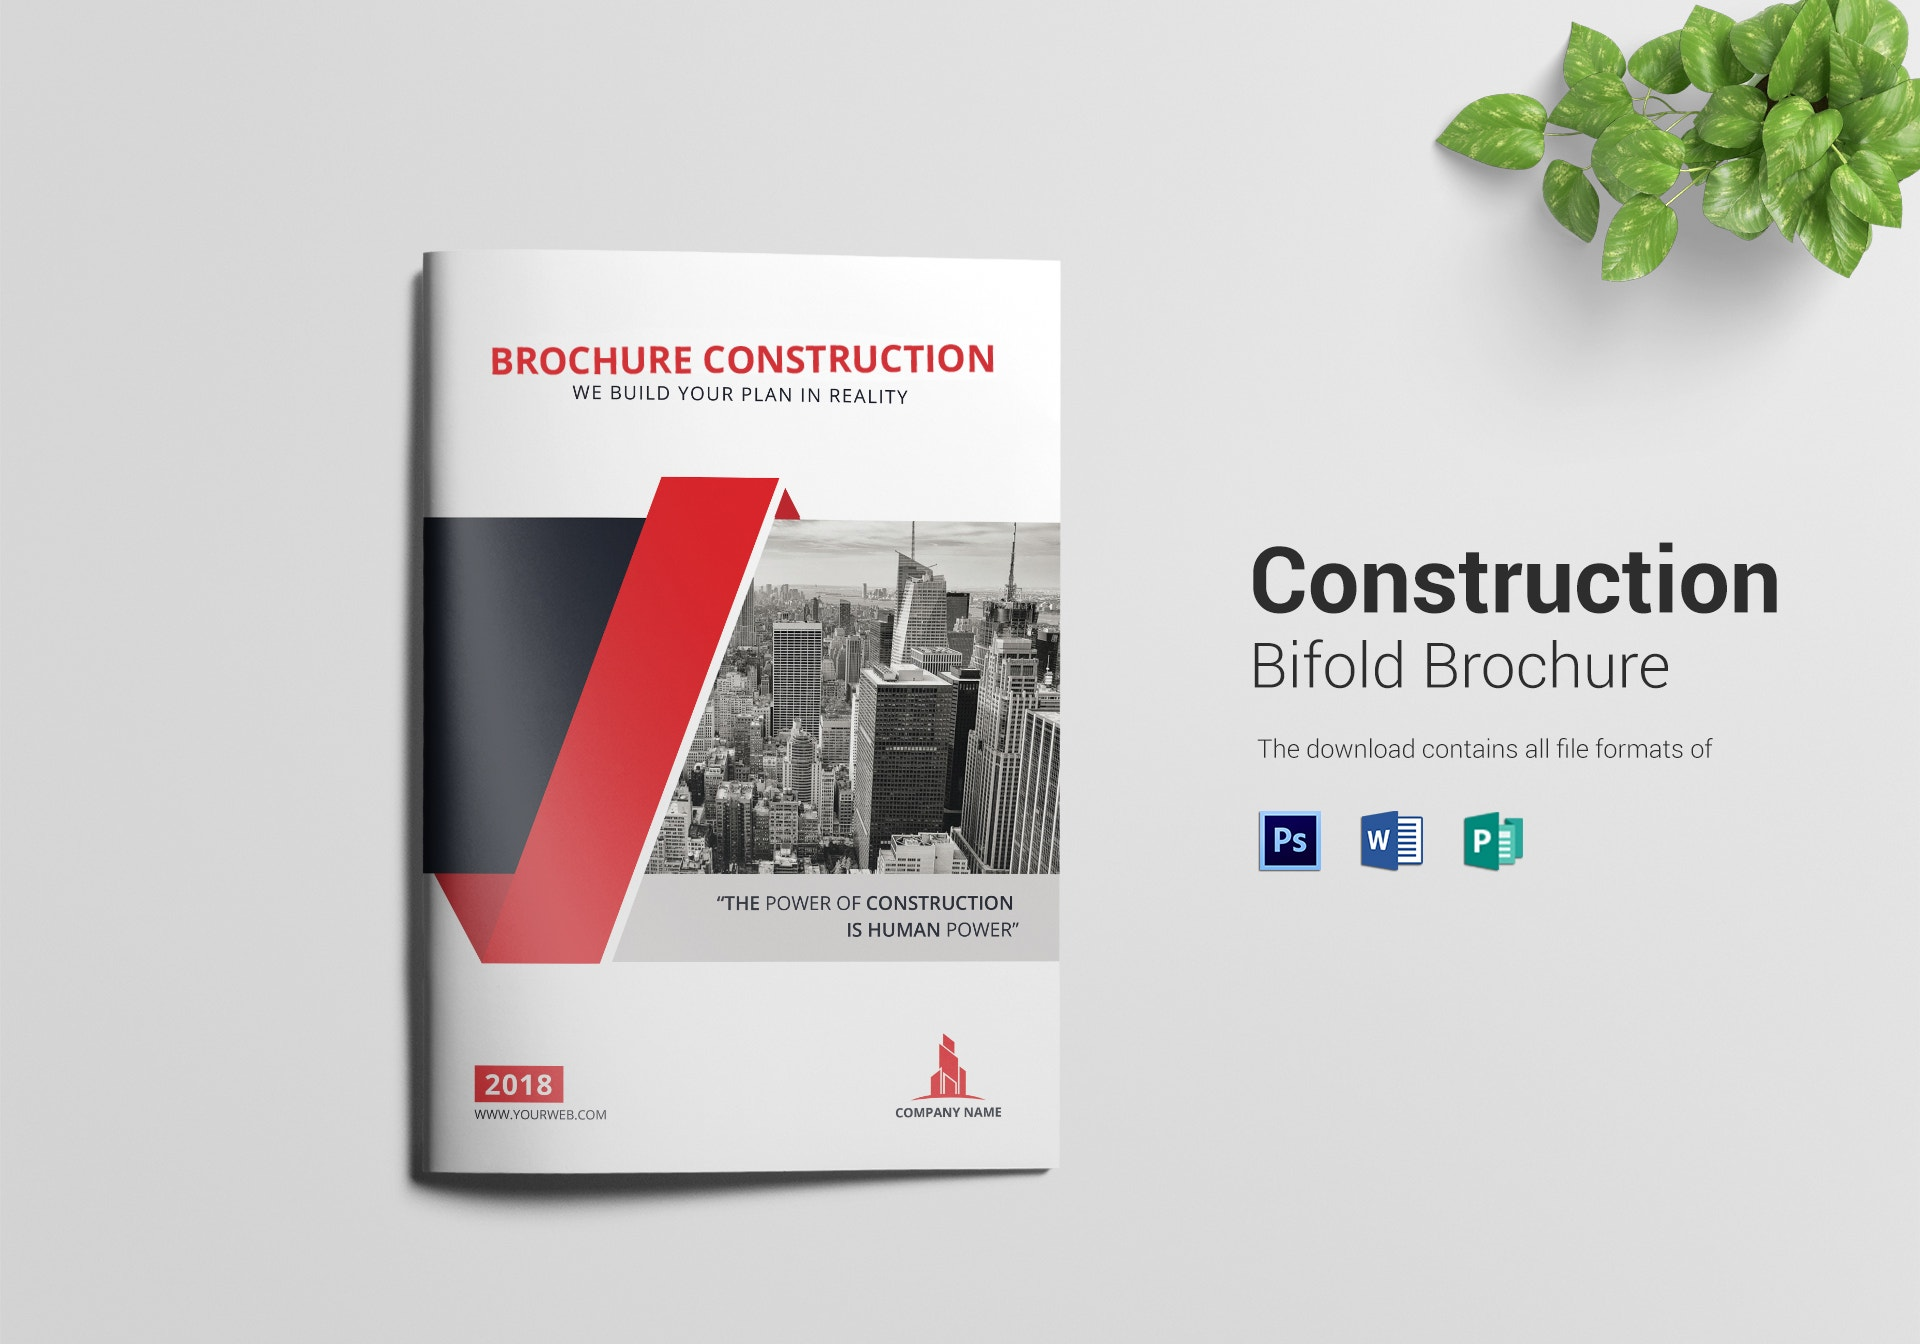 construction power bifold brochure sample